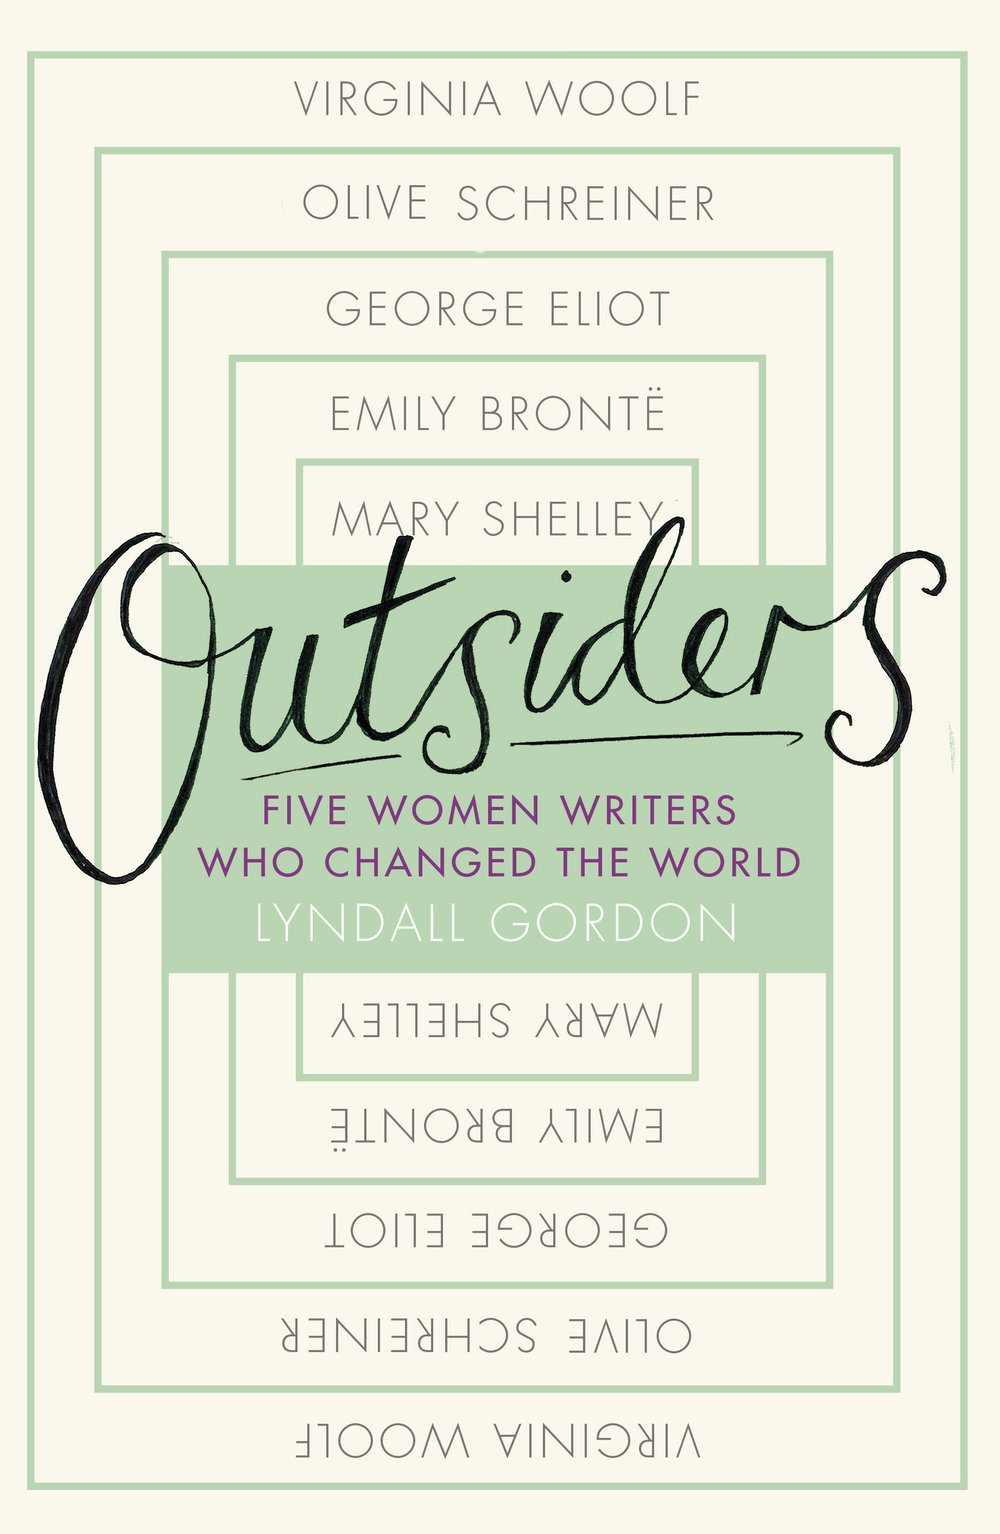 OUTSIDERS: FIVE WOMEN WRITERS WHO CHANGED THE WORLD Literary Biography, 336 pages  Virago, October 2017  Lyndall Gordon turns her insightful gaze to several extraordinary literary women who chose to live and create at the margins. In powerful chapters with titles like 'Prodigy', 'Spinster' and 'Visionary', she focuses on the connections between creativity and shadow in lives at their boldest moment – the lives of Mary Shelley, Emily Brontë, George Eliot, Olive Schreiner and Virginia Woolf.